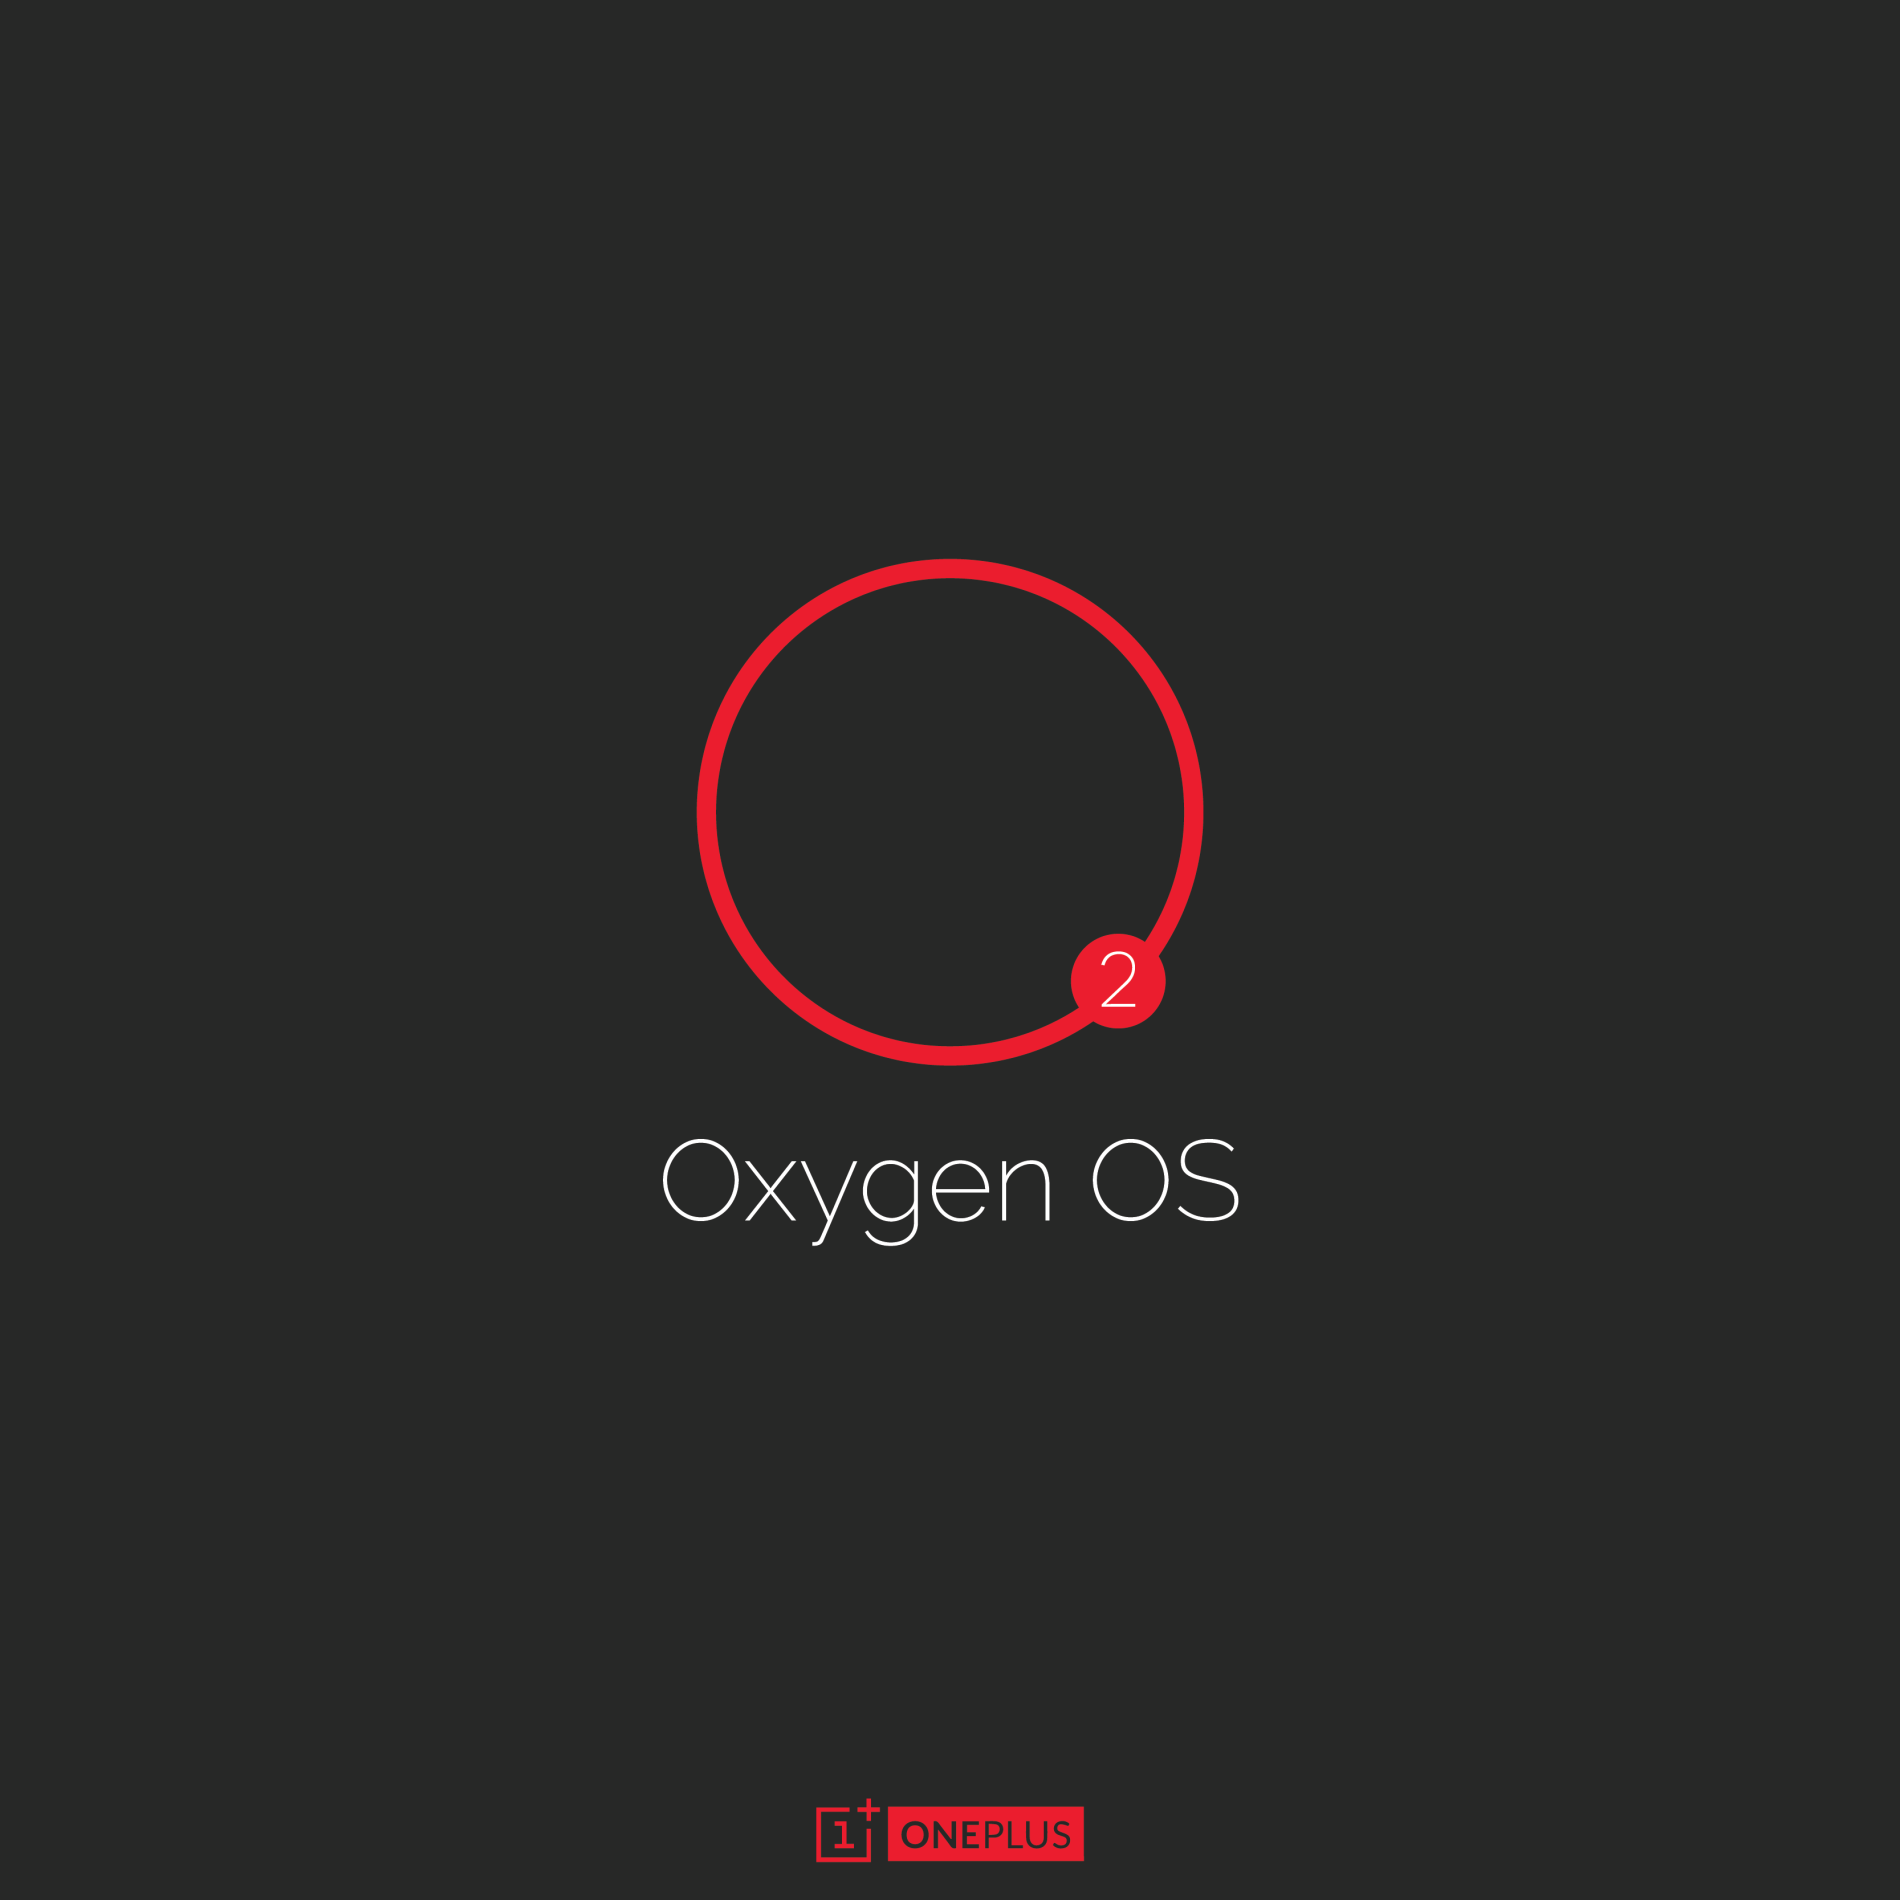 Download OnePlus One Oxygen OS Stock Wallpapers 1900x1900